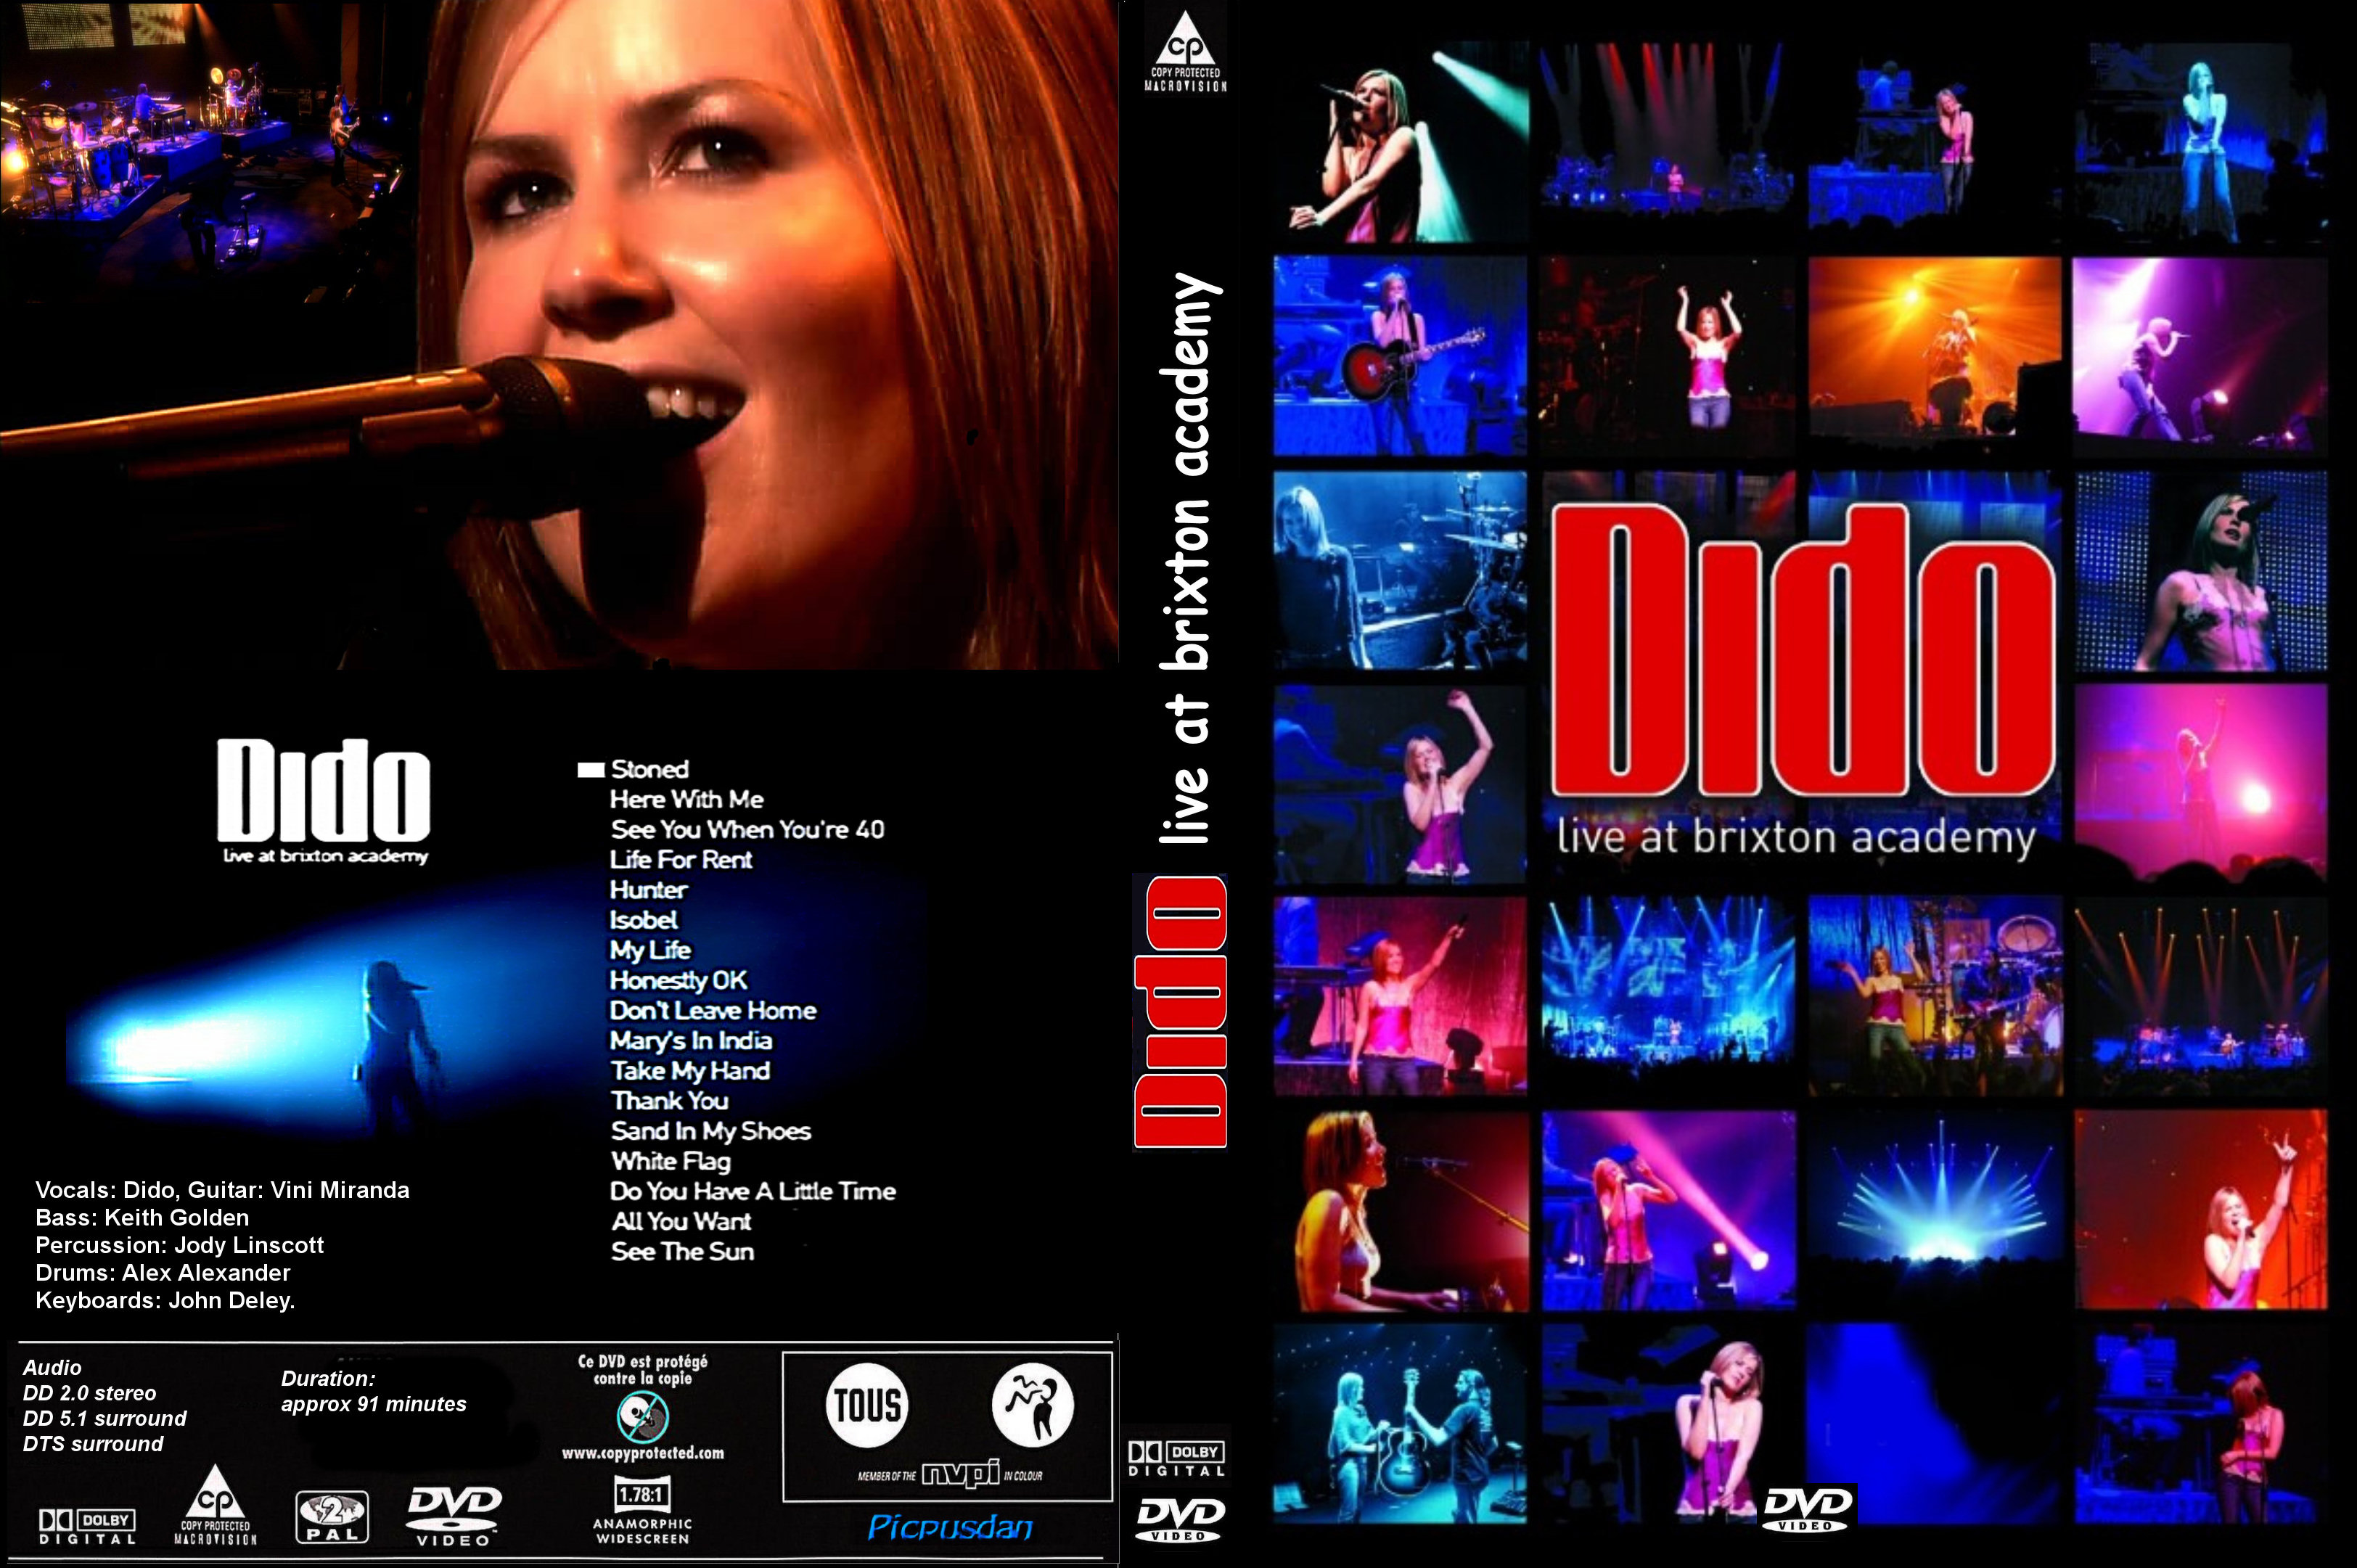 dido live at brixton academy torrent